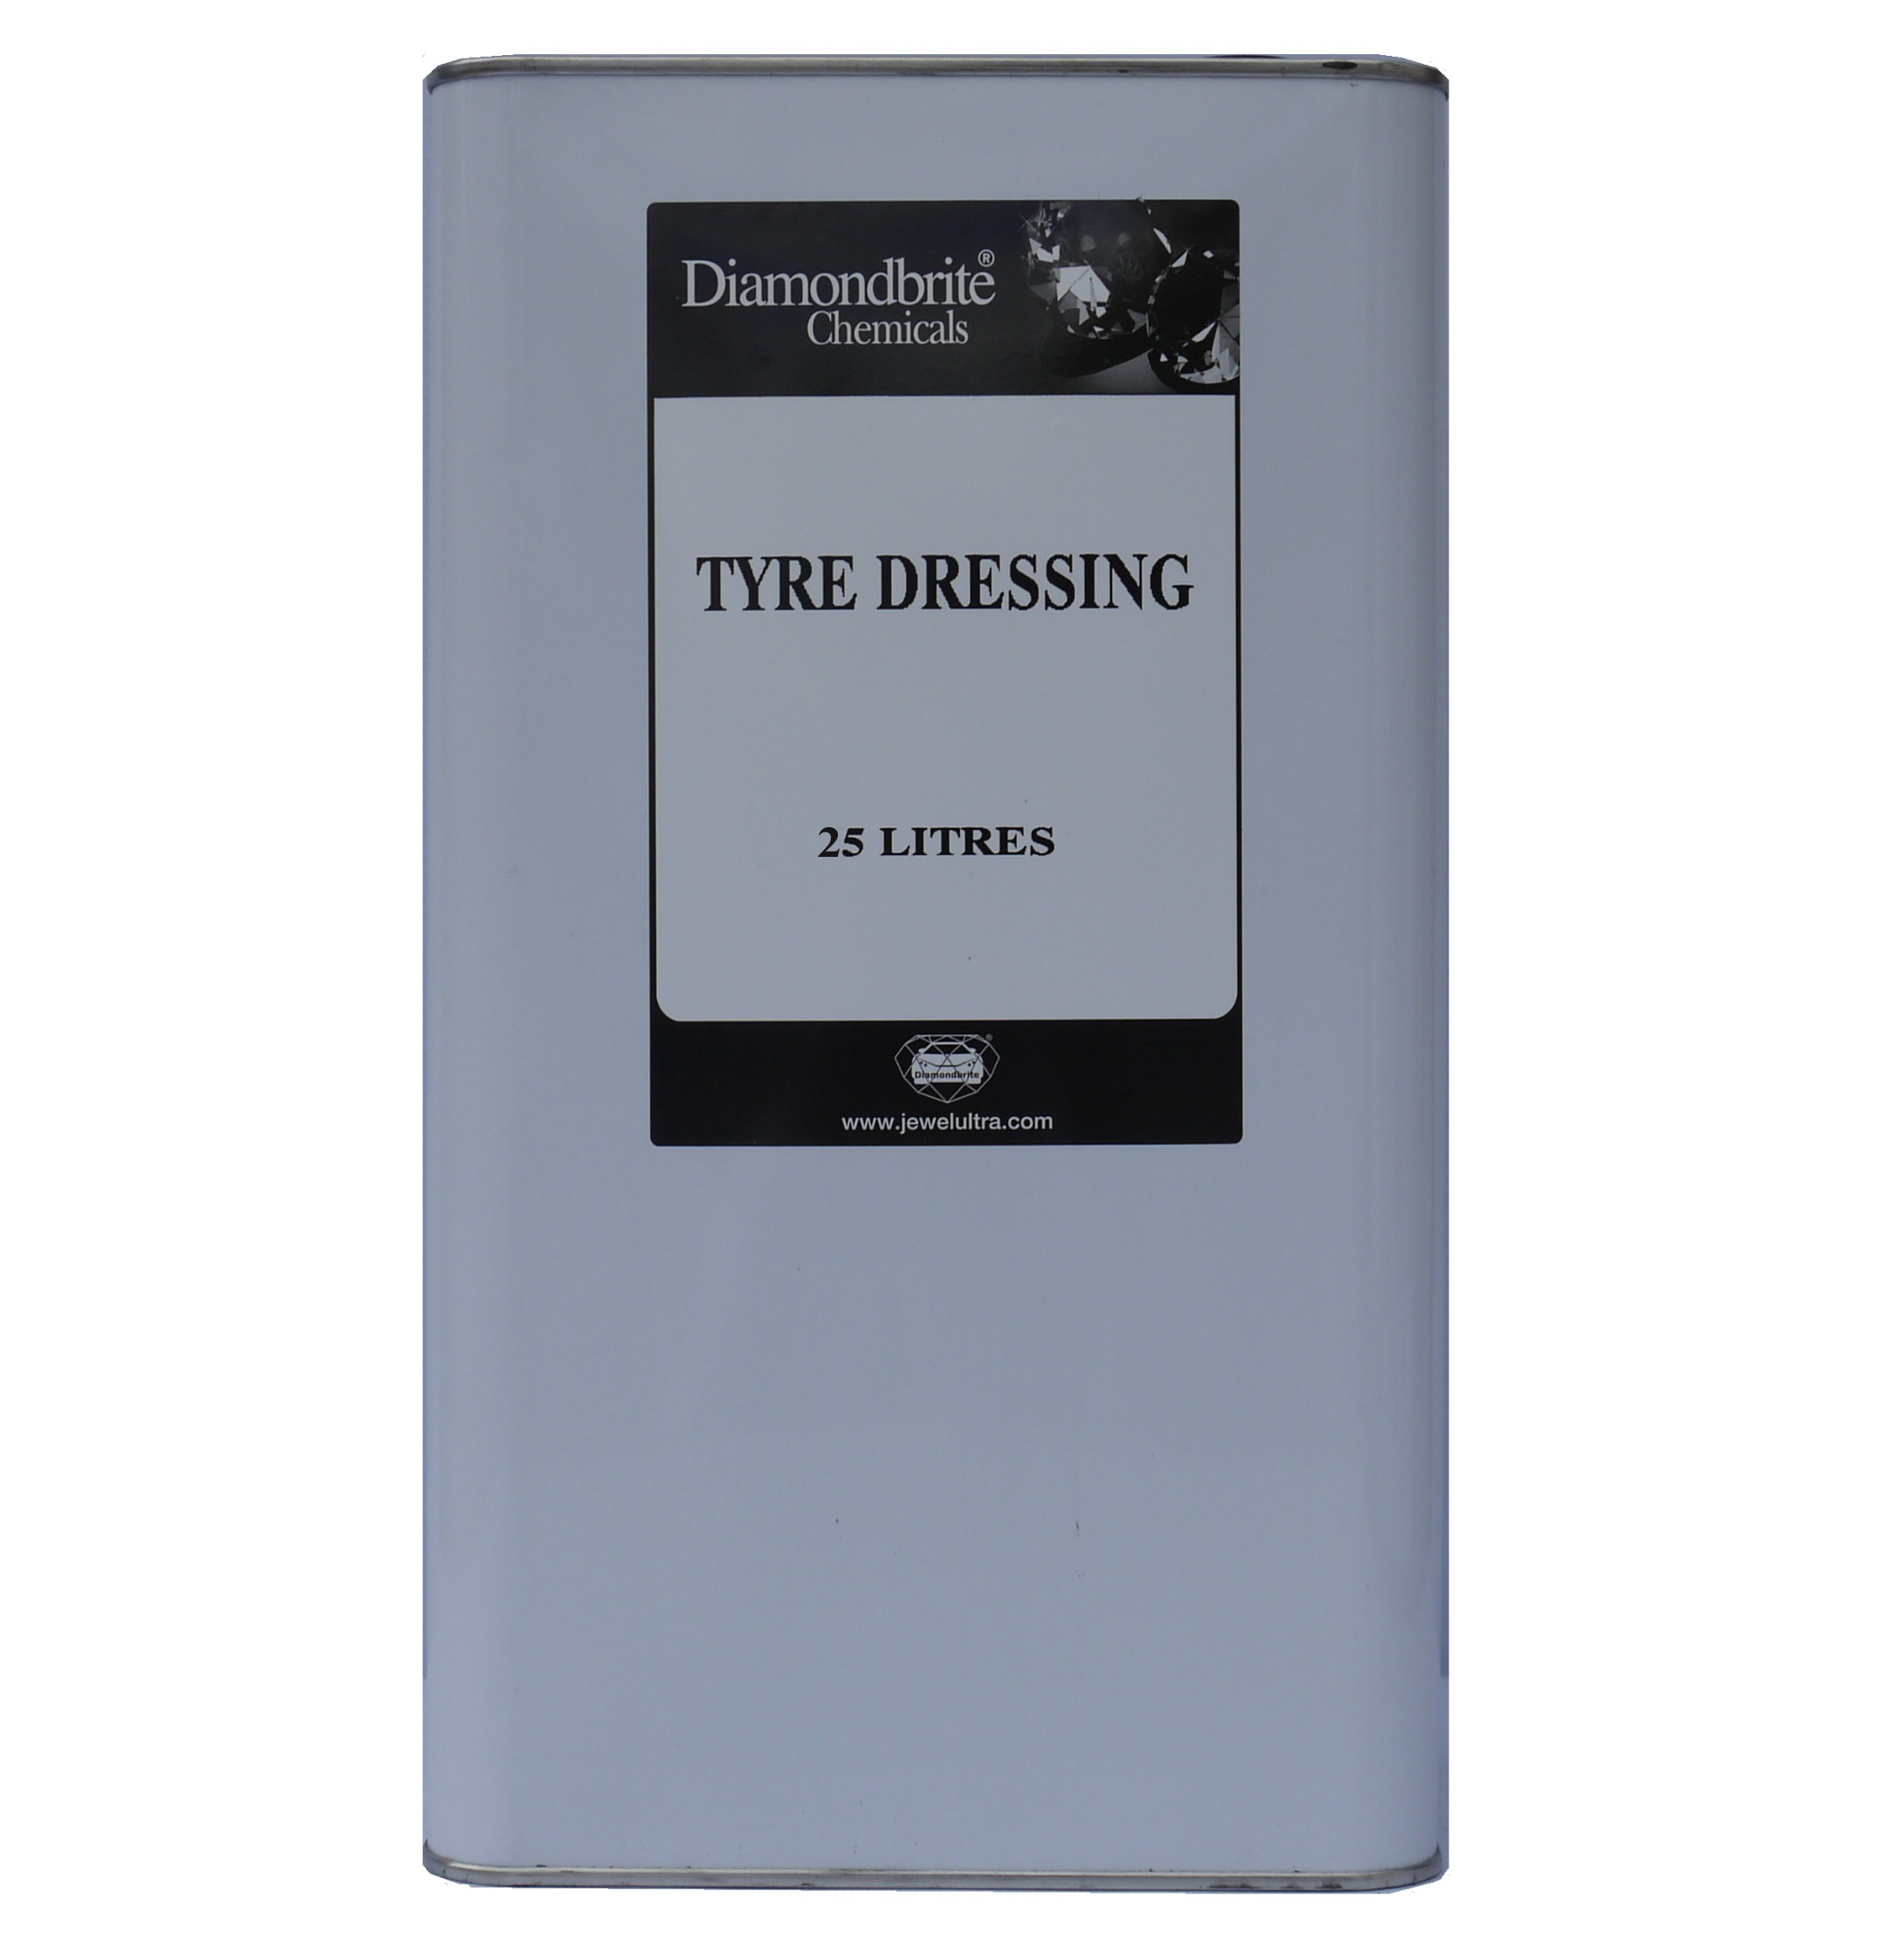 Diamondbrite-Tyre-Dressing-25litre